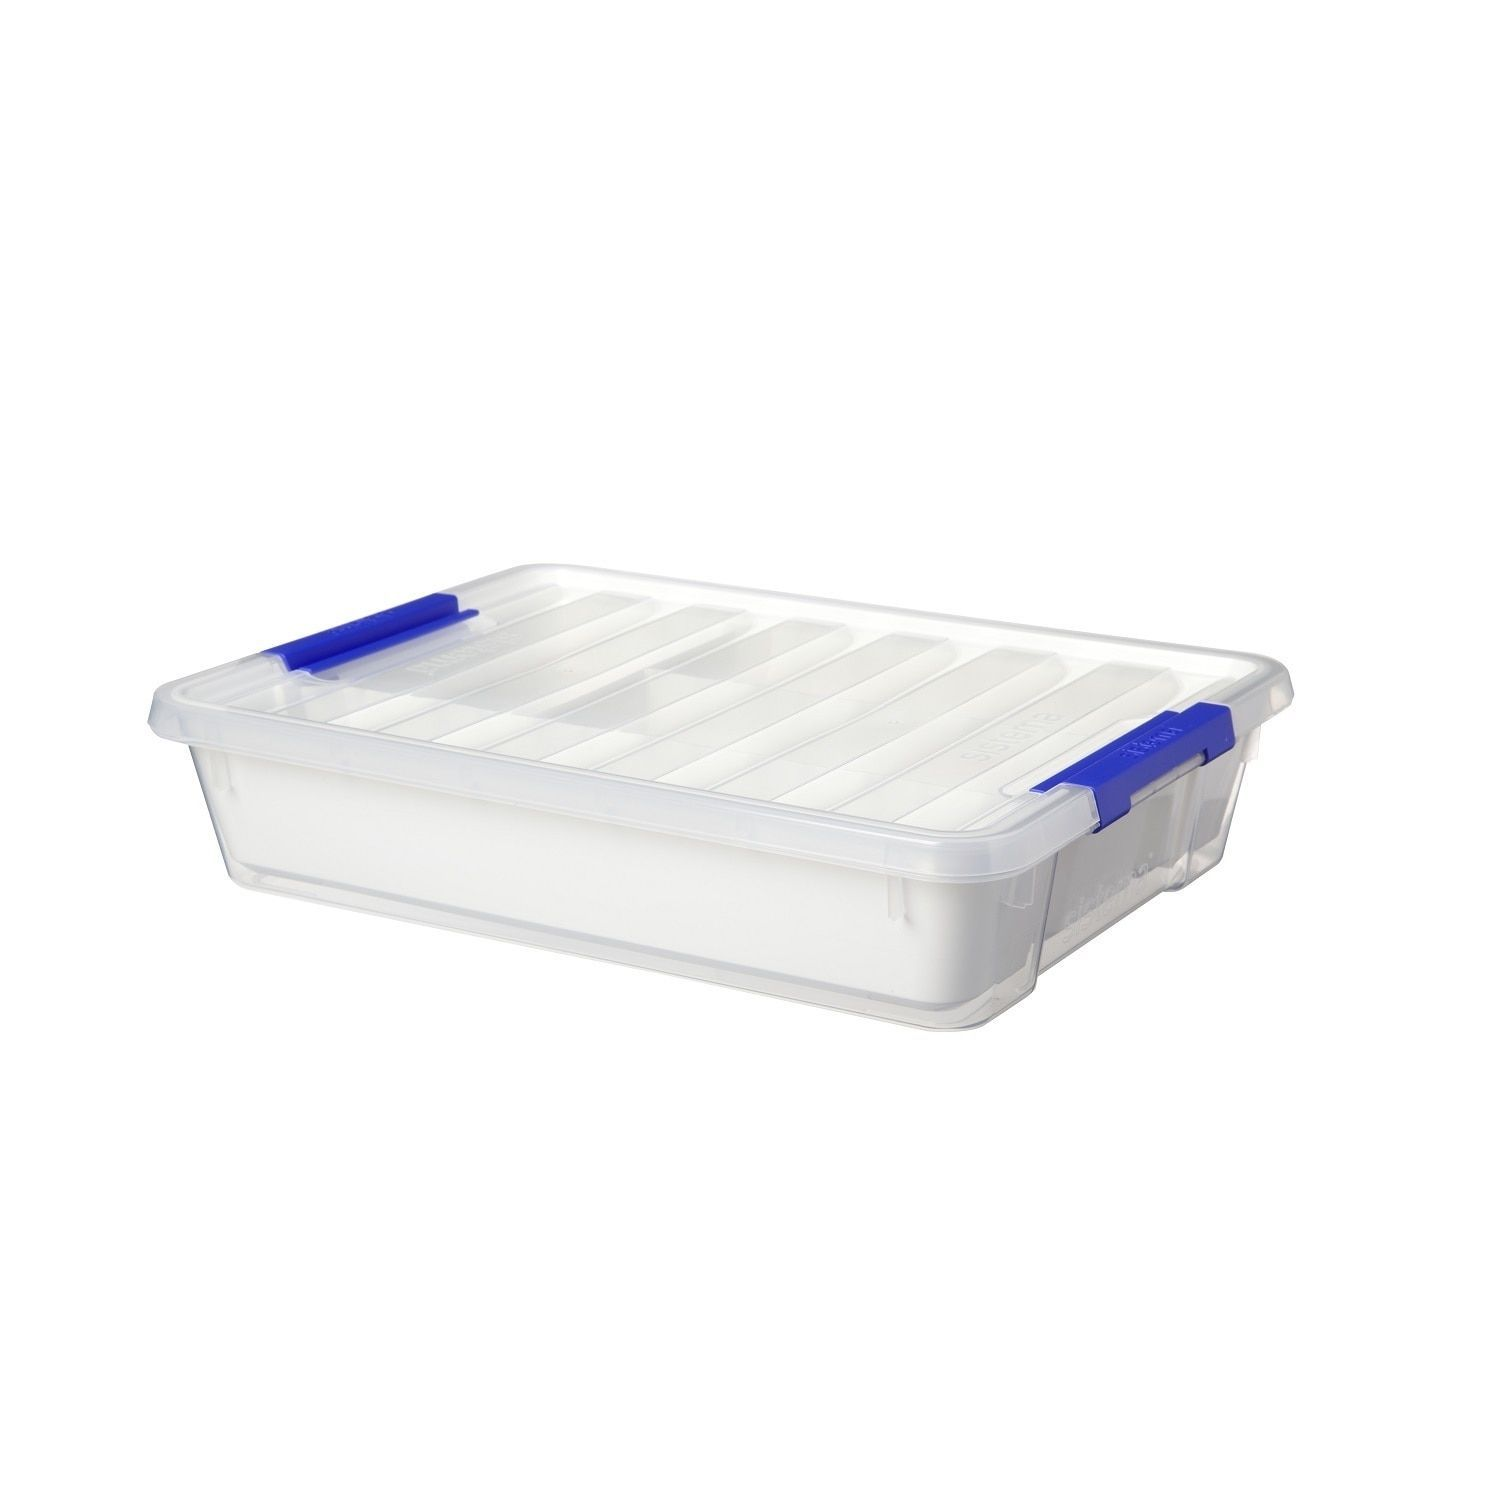 Good Plastic Storage Bins With Lids - 69faac5dba78e06f023a53fedcf292ae  Best Photo Reference_423465.jpg